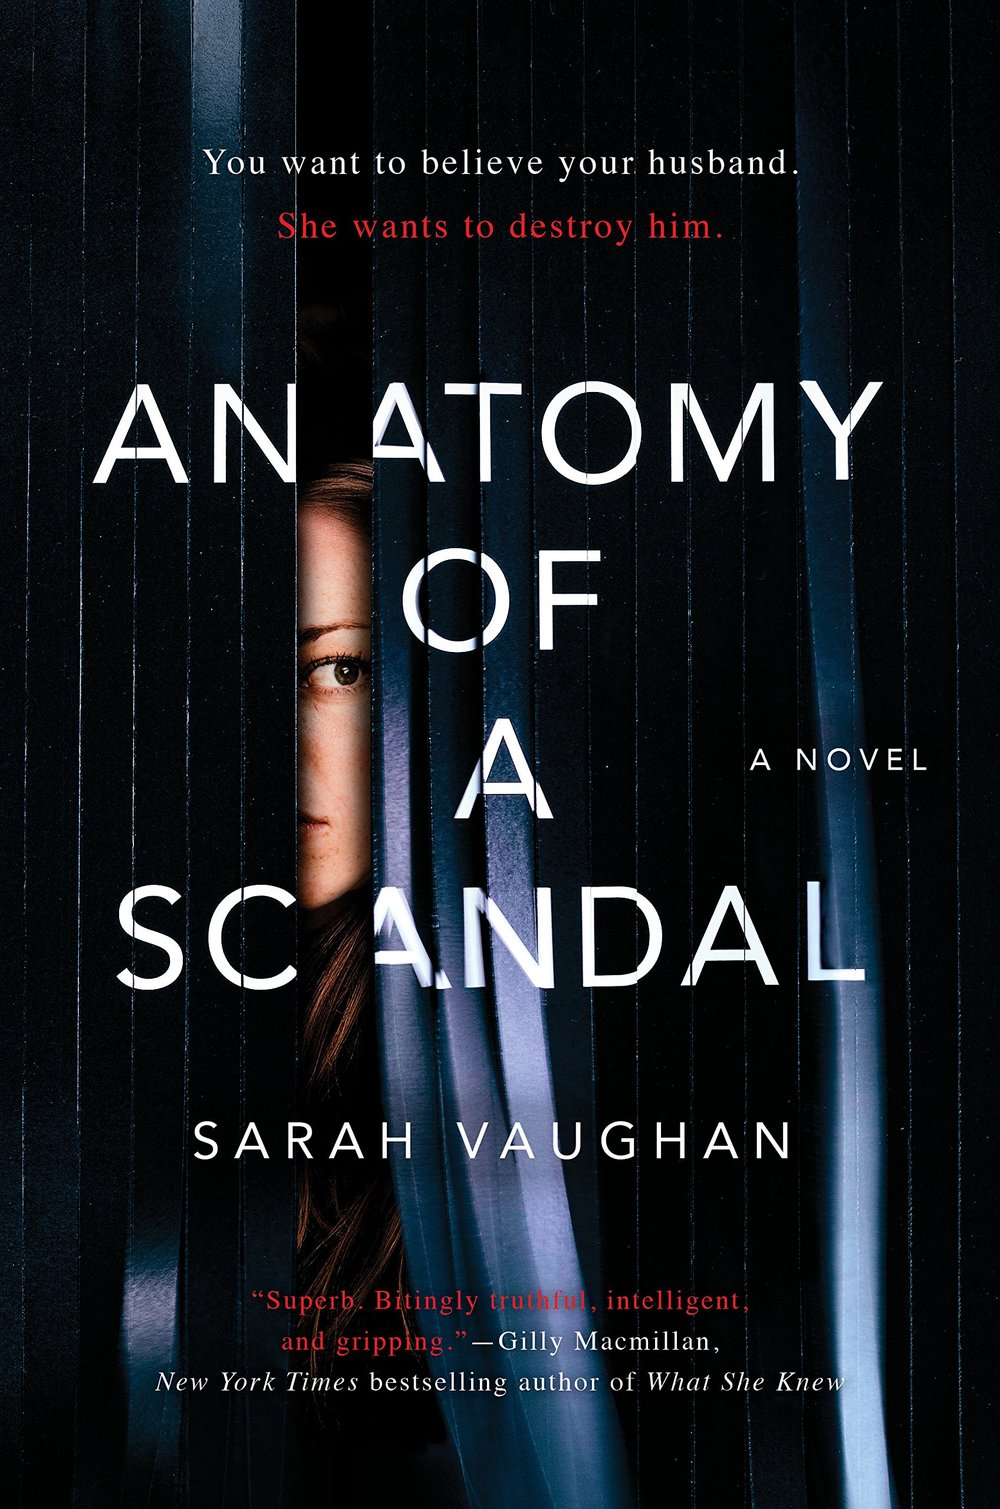 anatomy of a scandal by sarah vaughan.jpg